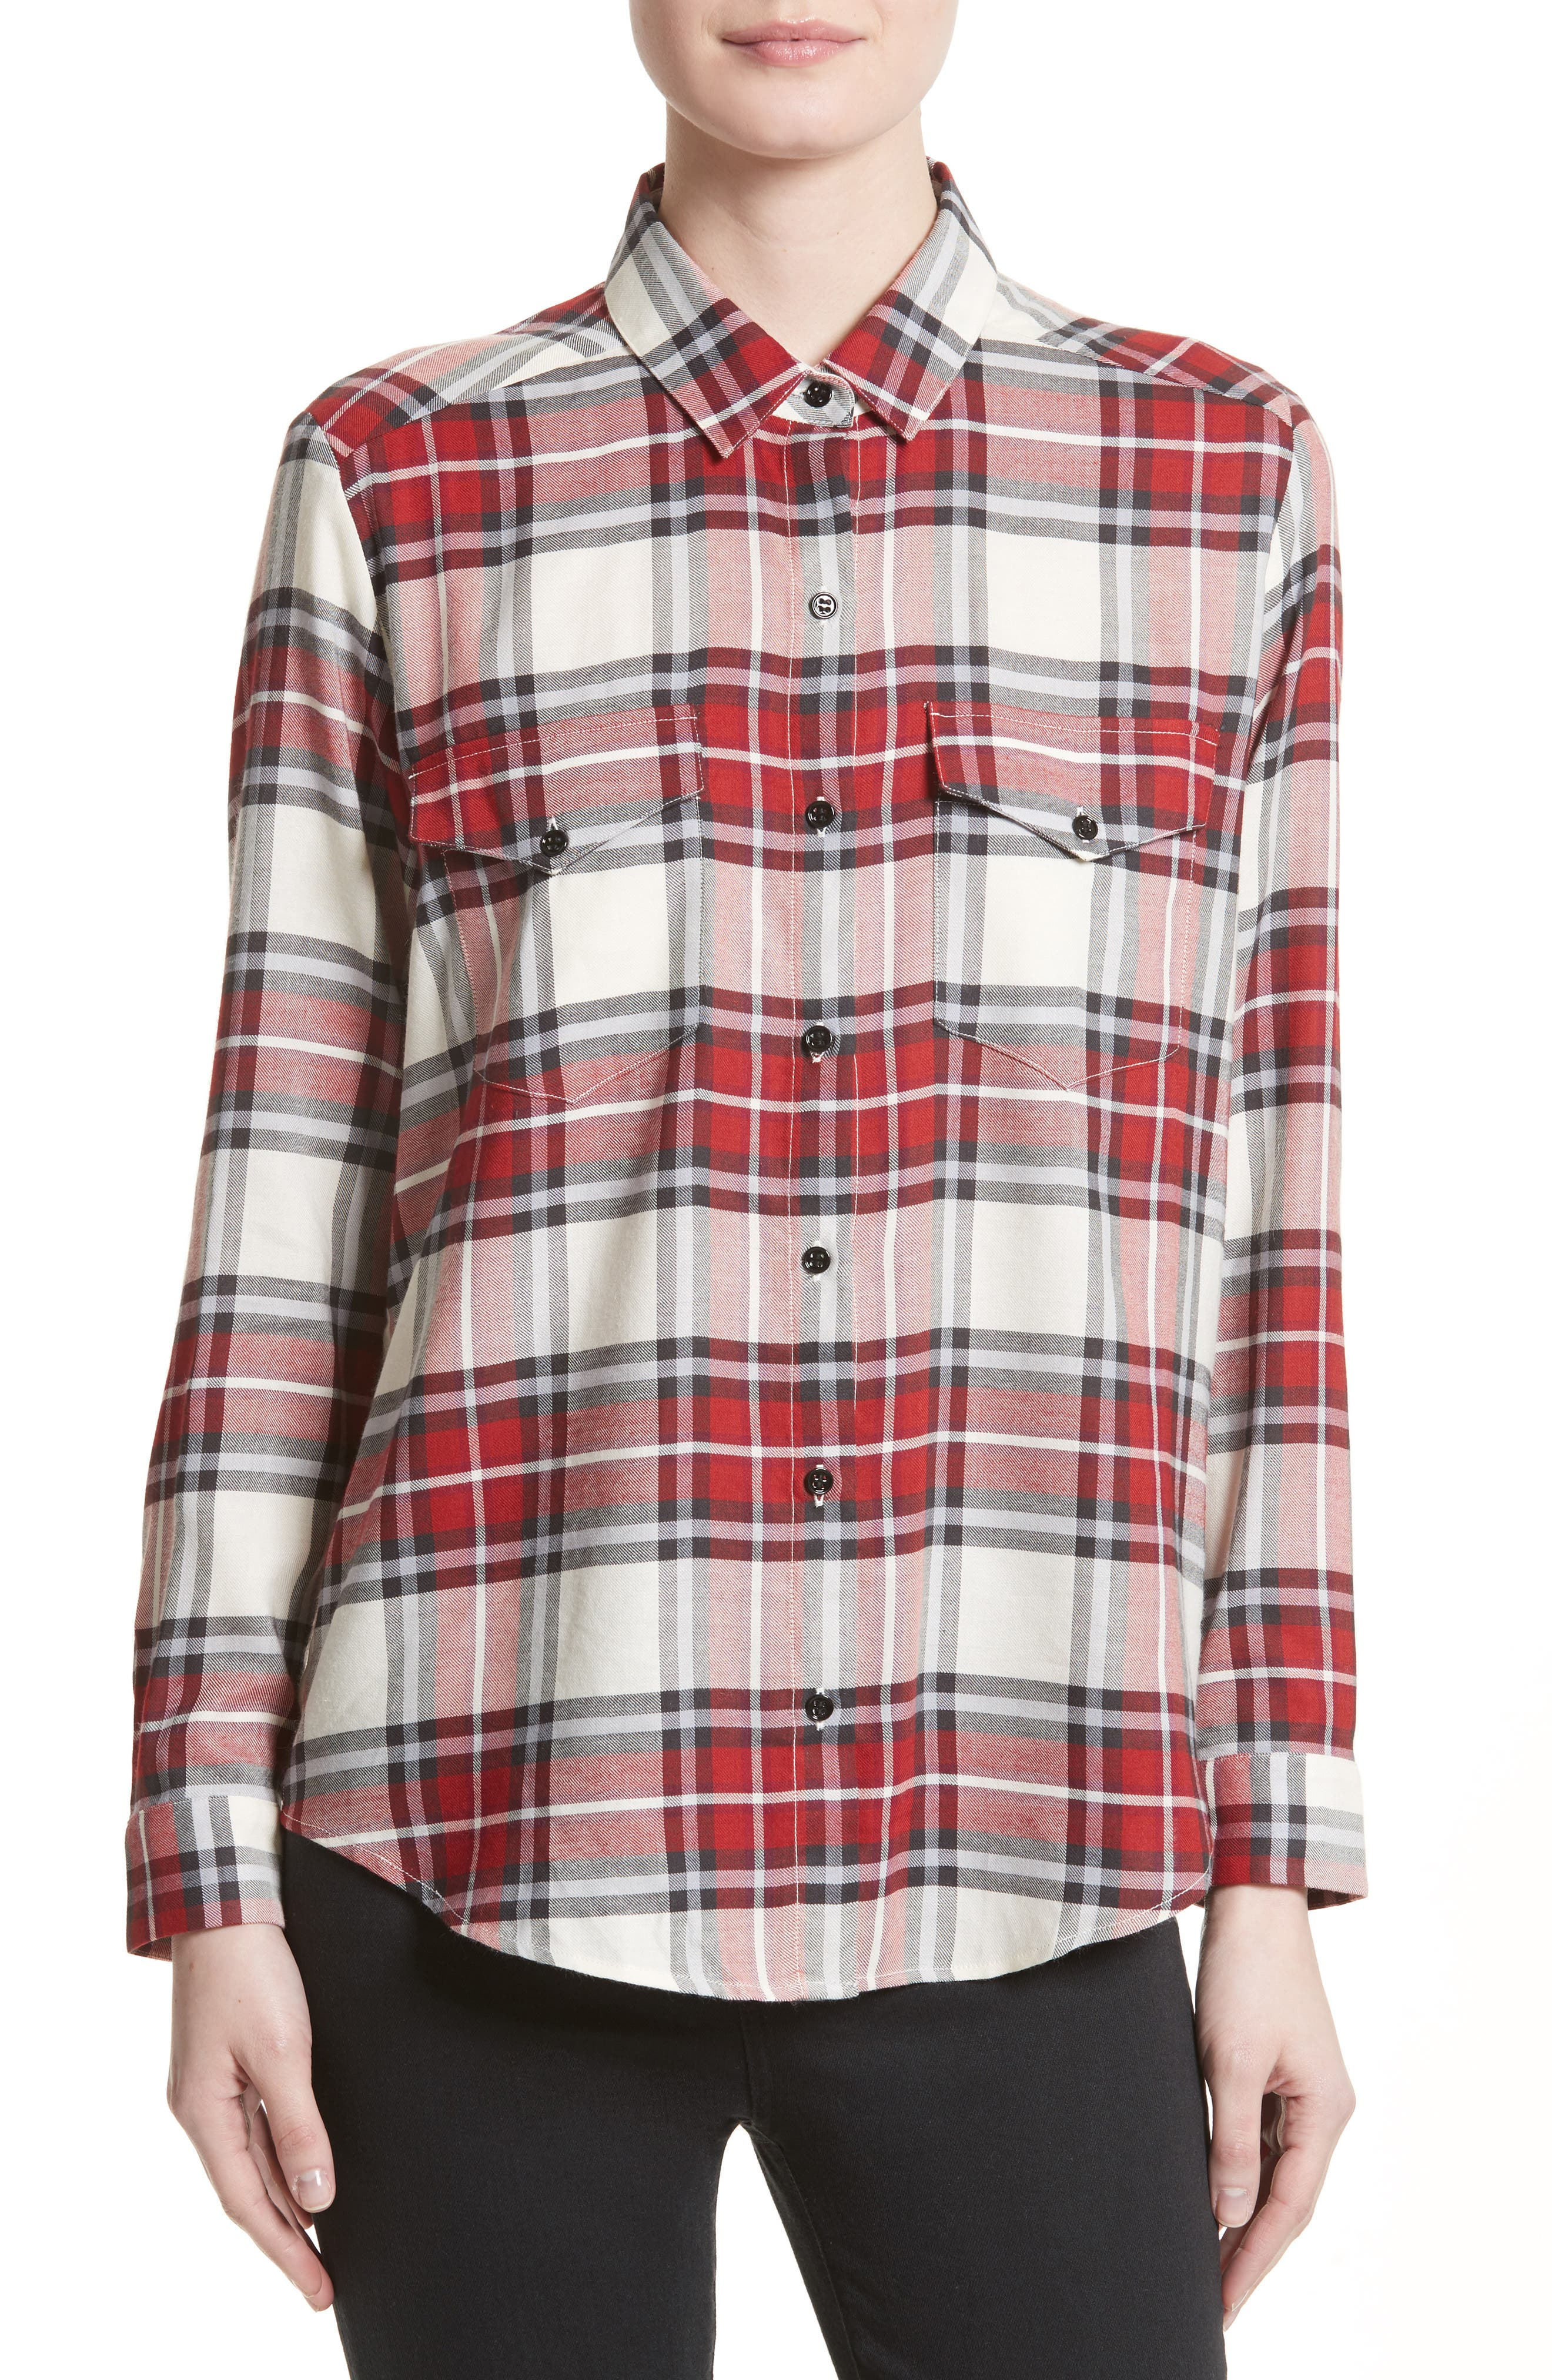 Alternate Image 1 Selected - The Kooples Plaid Flannel Shirt